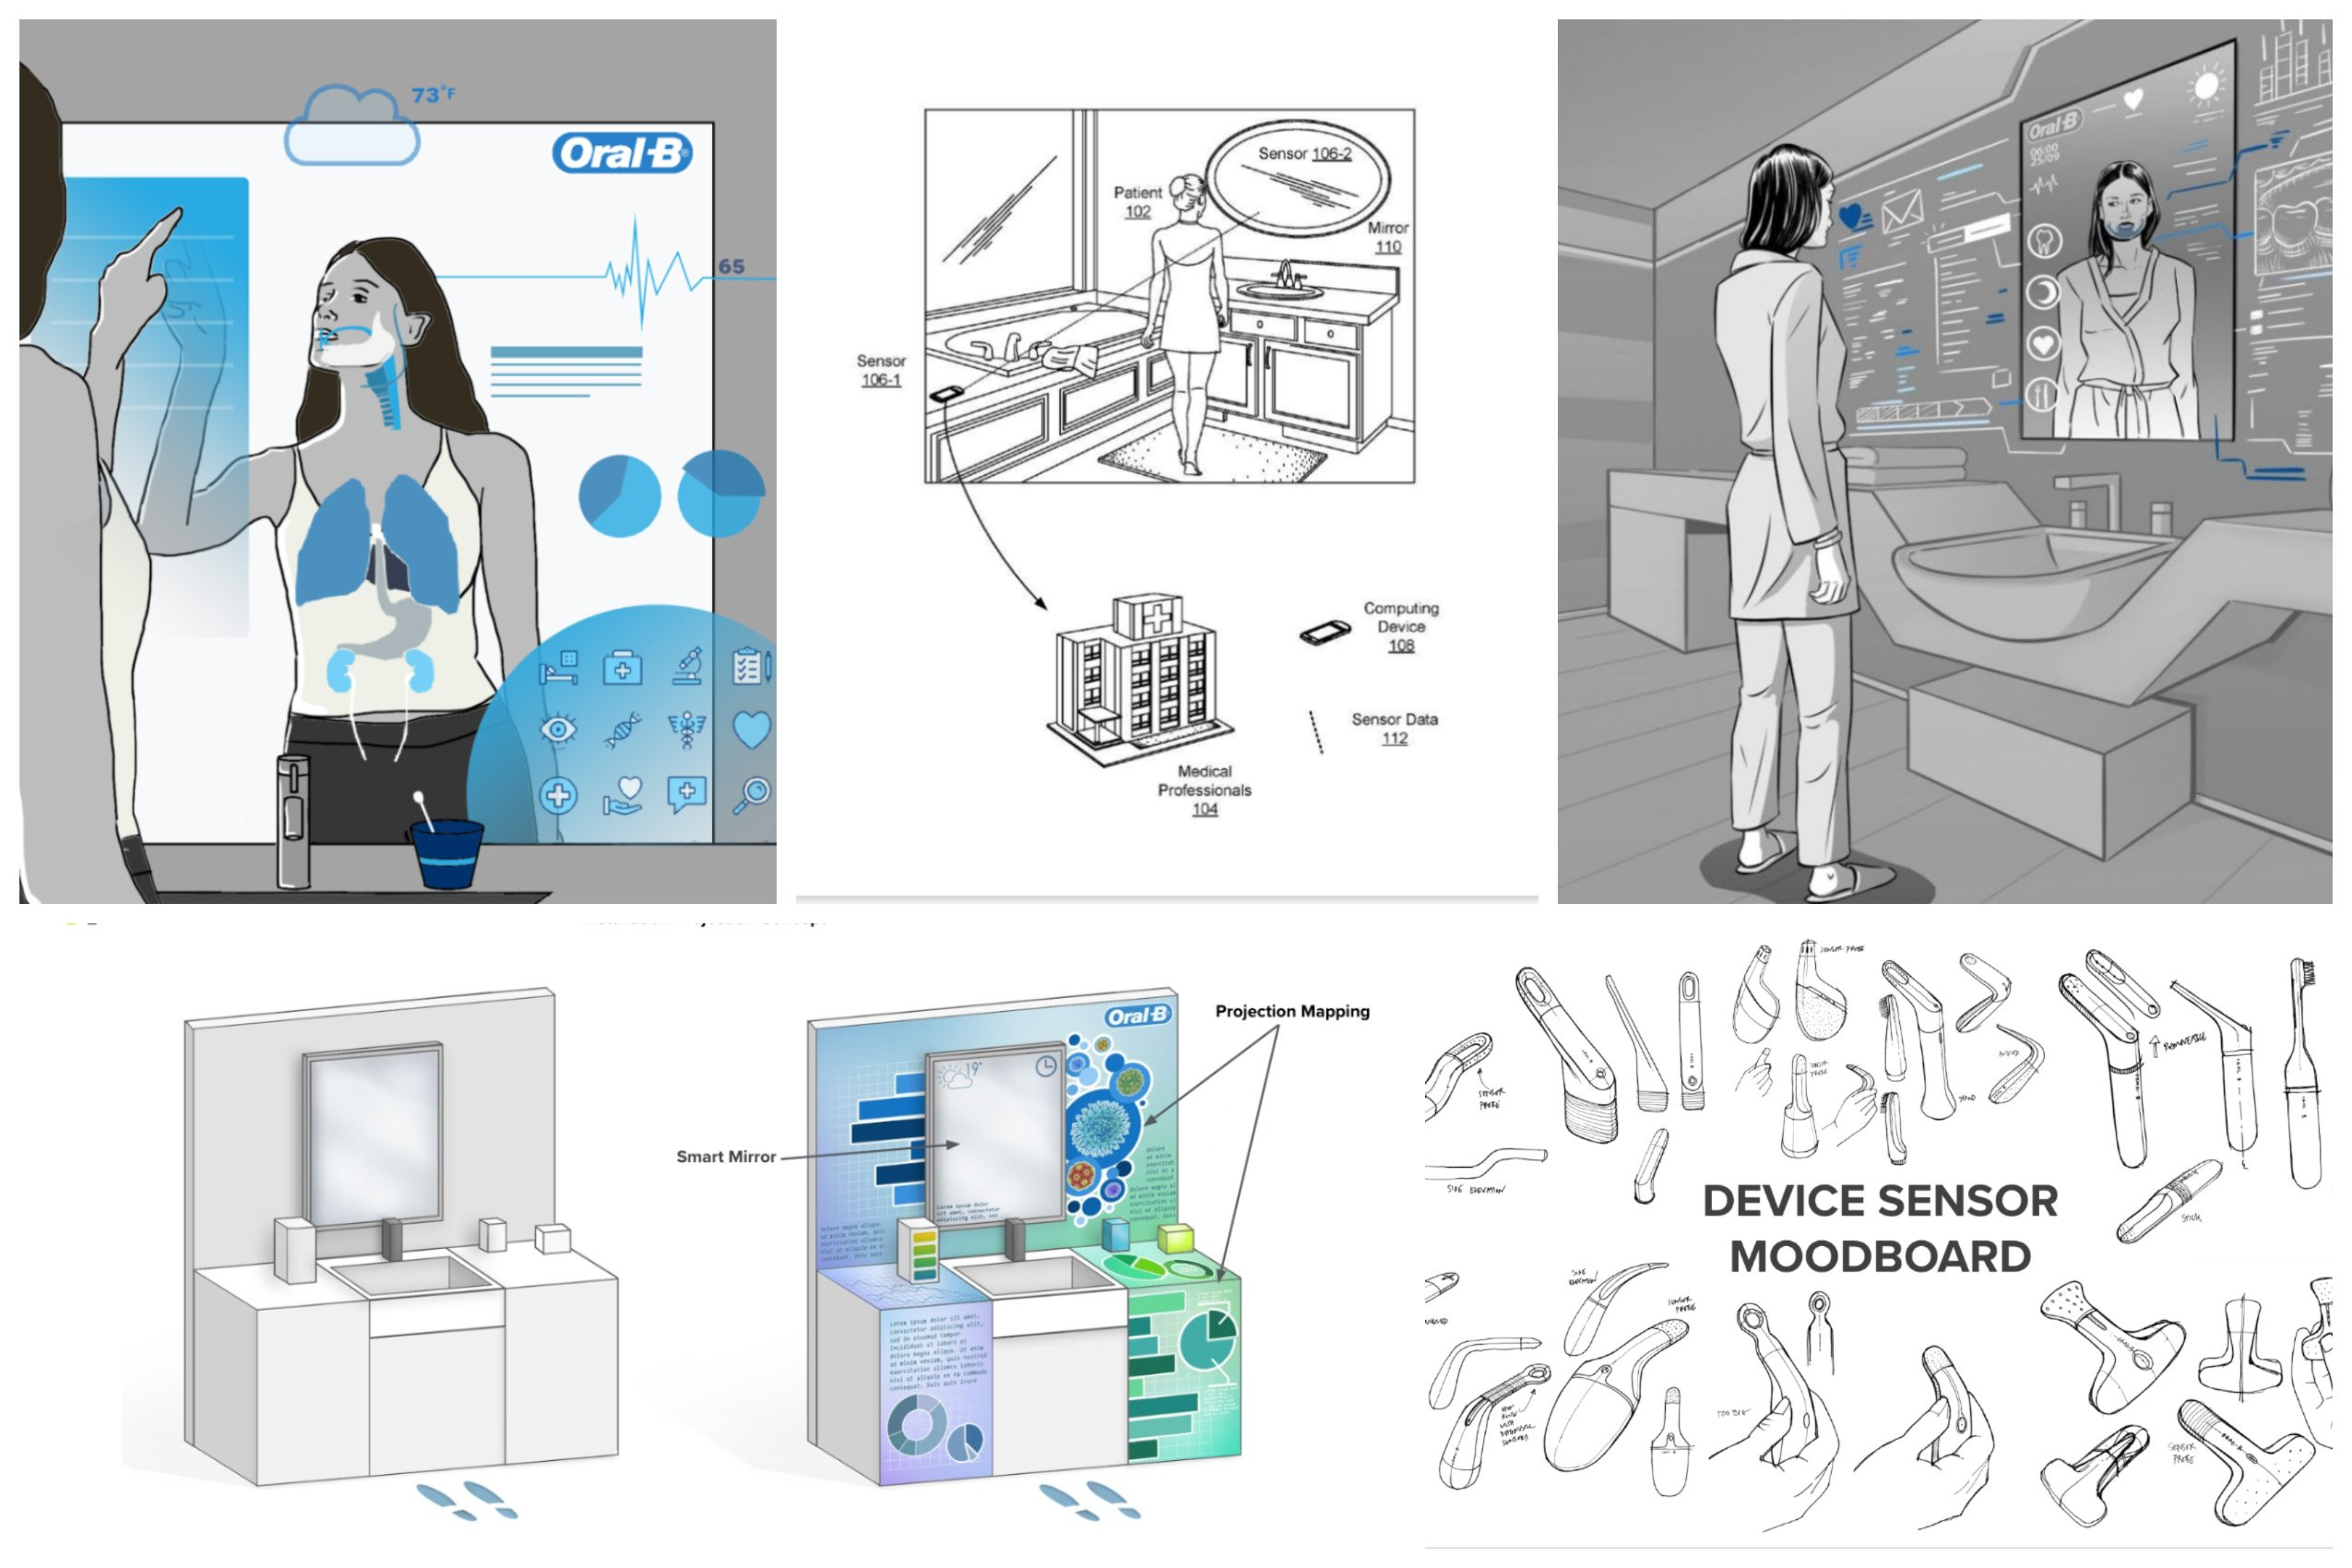 Oral B Creative Stages